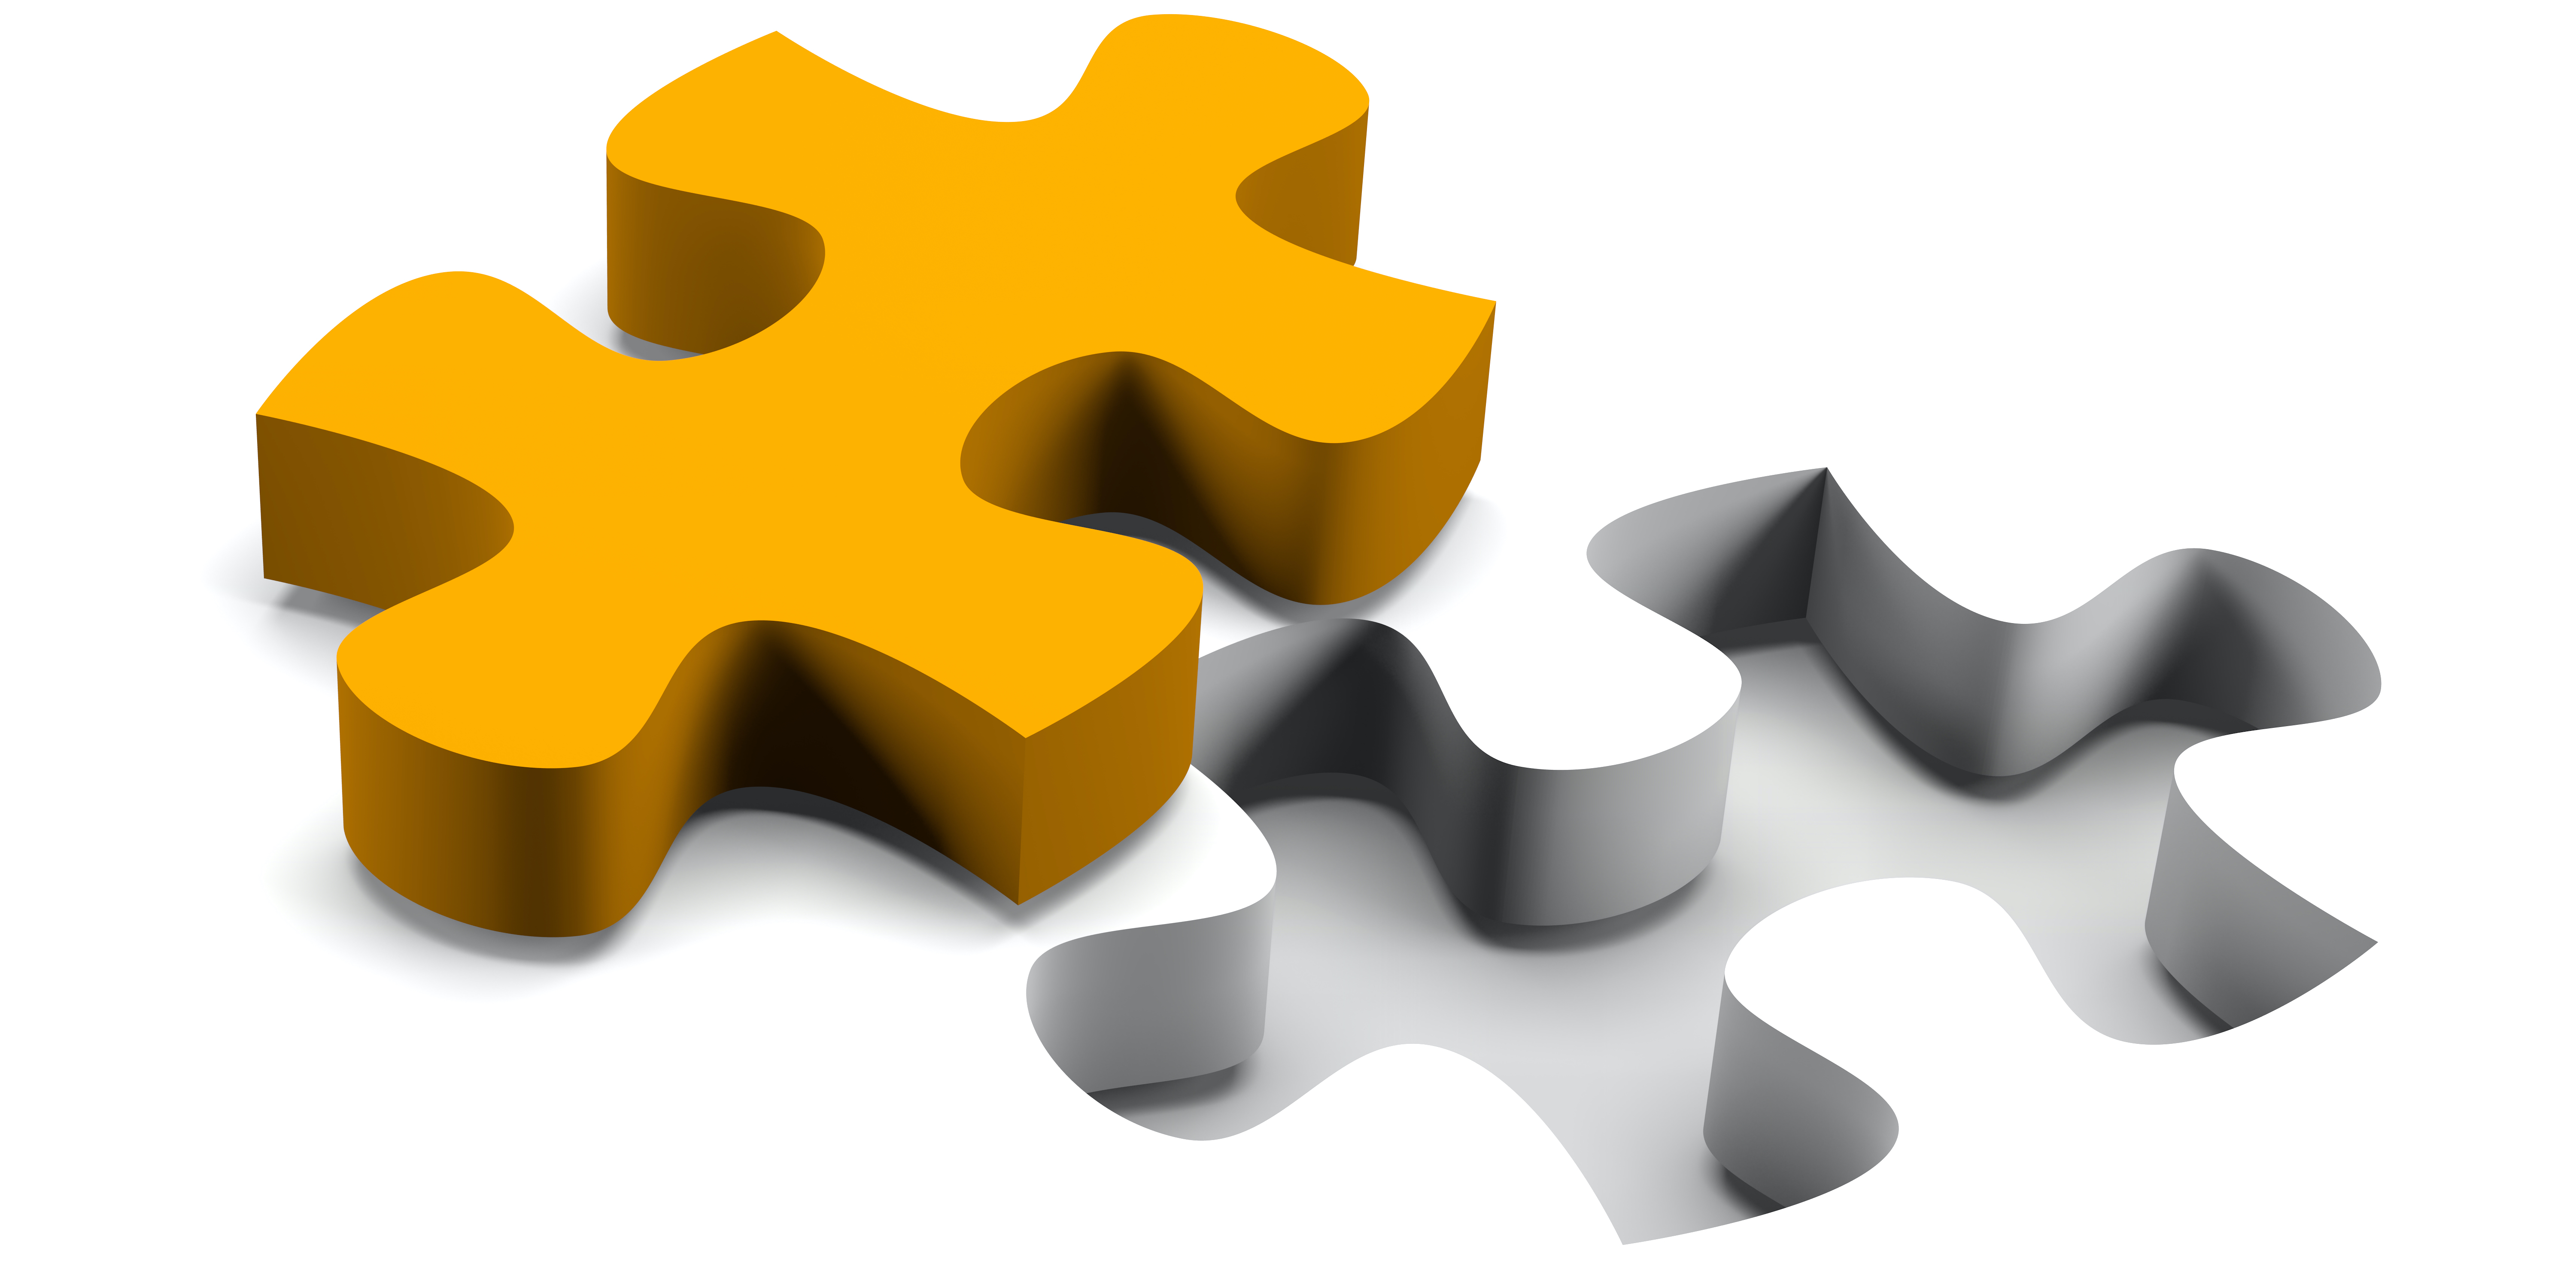 Puzzle piece fitting together